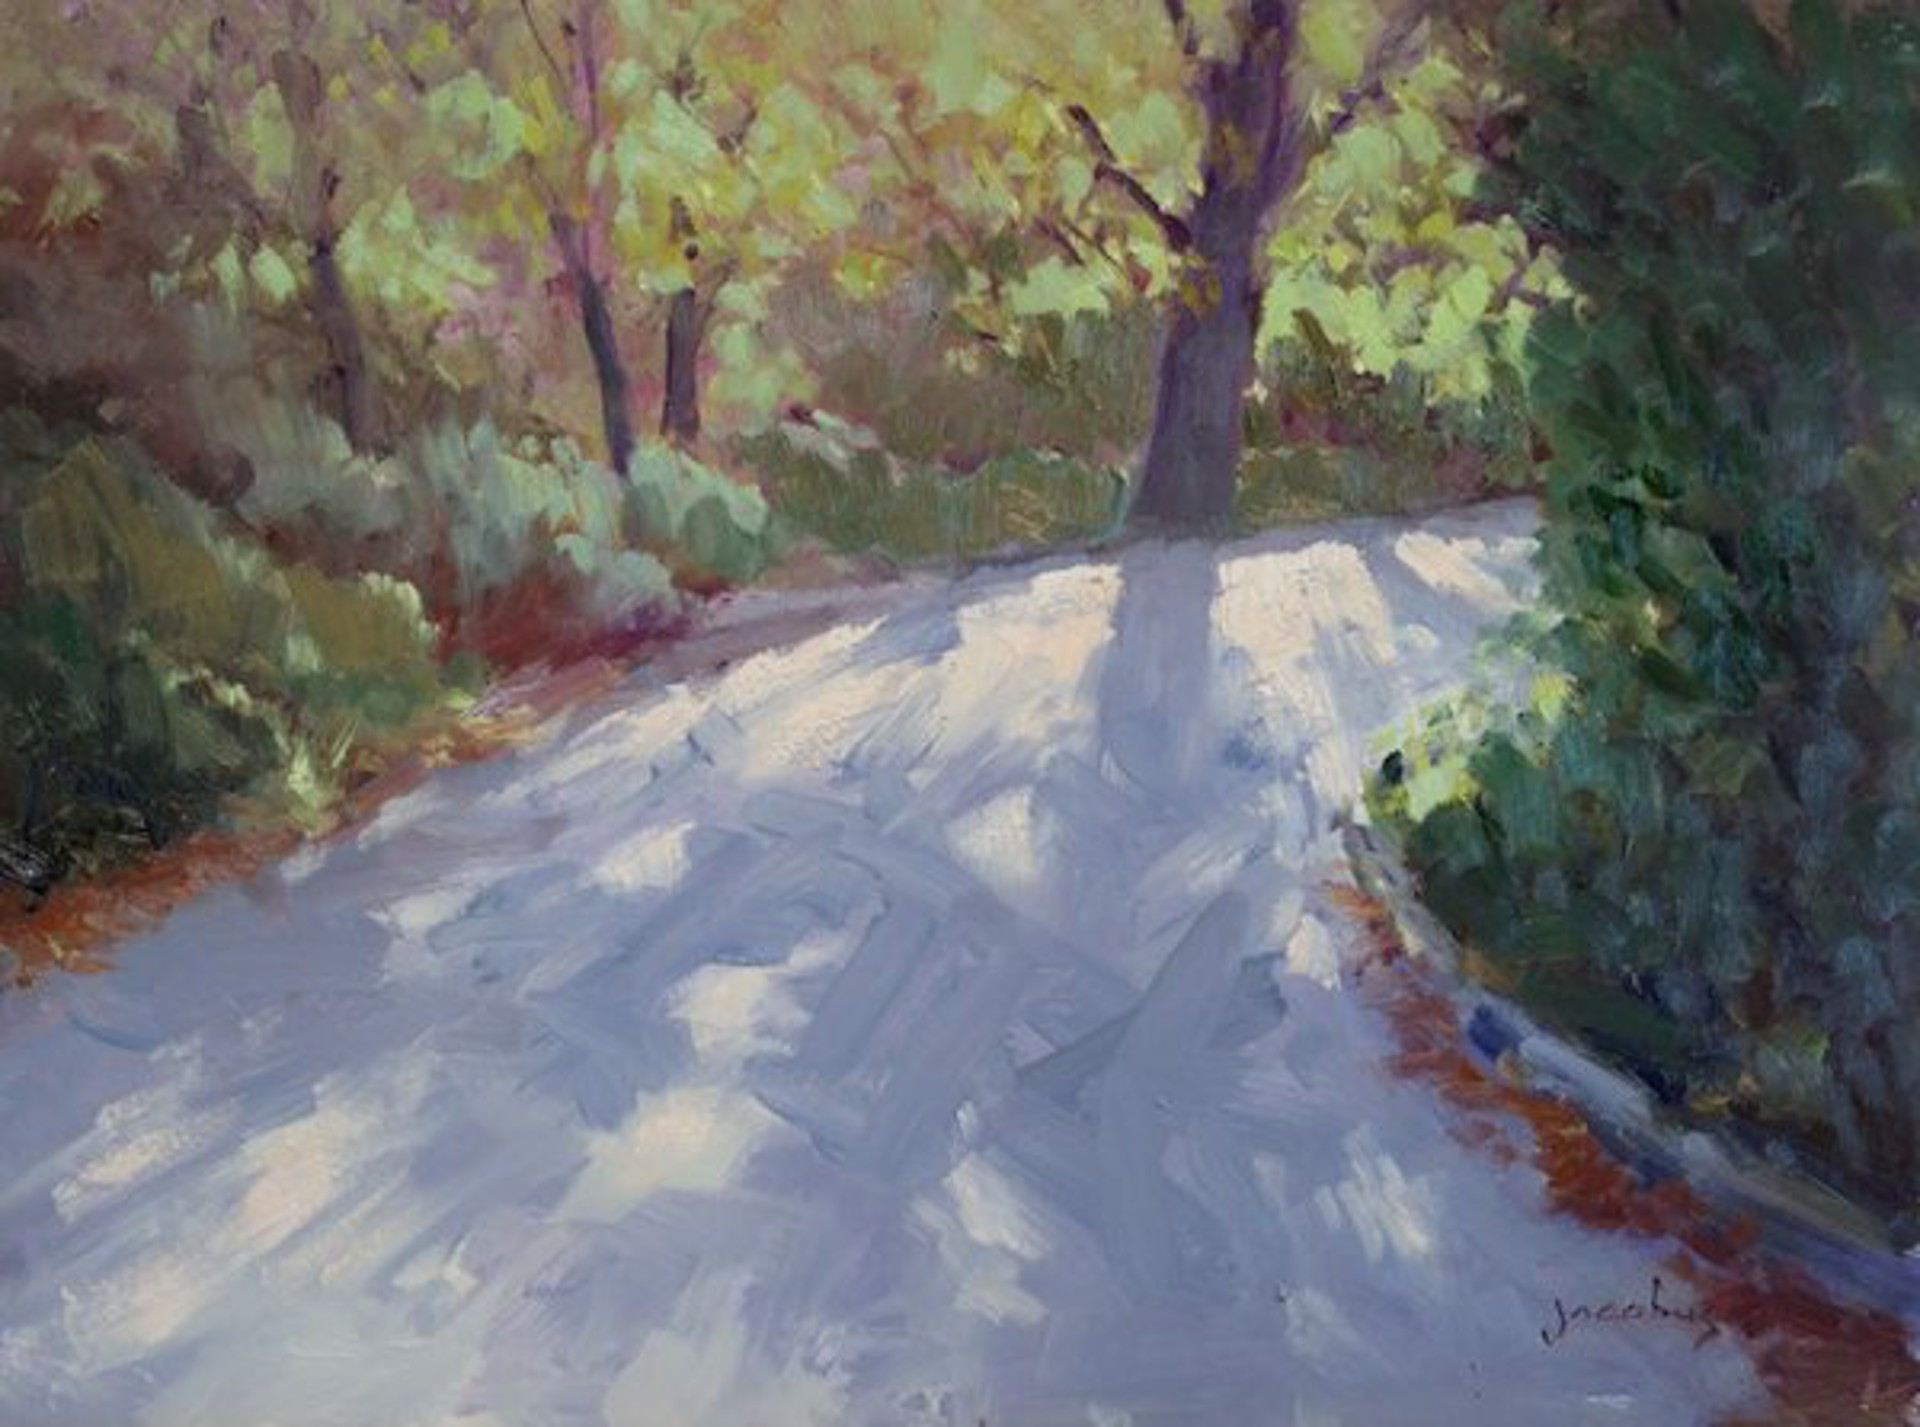 Path To Crystal Cove by Jacobus Baas